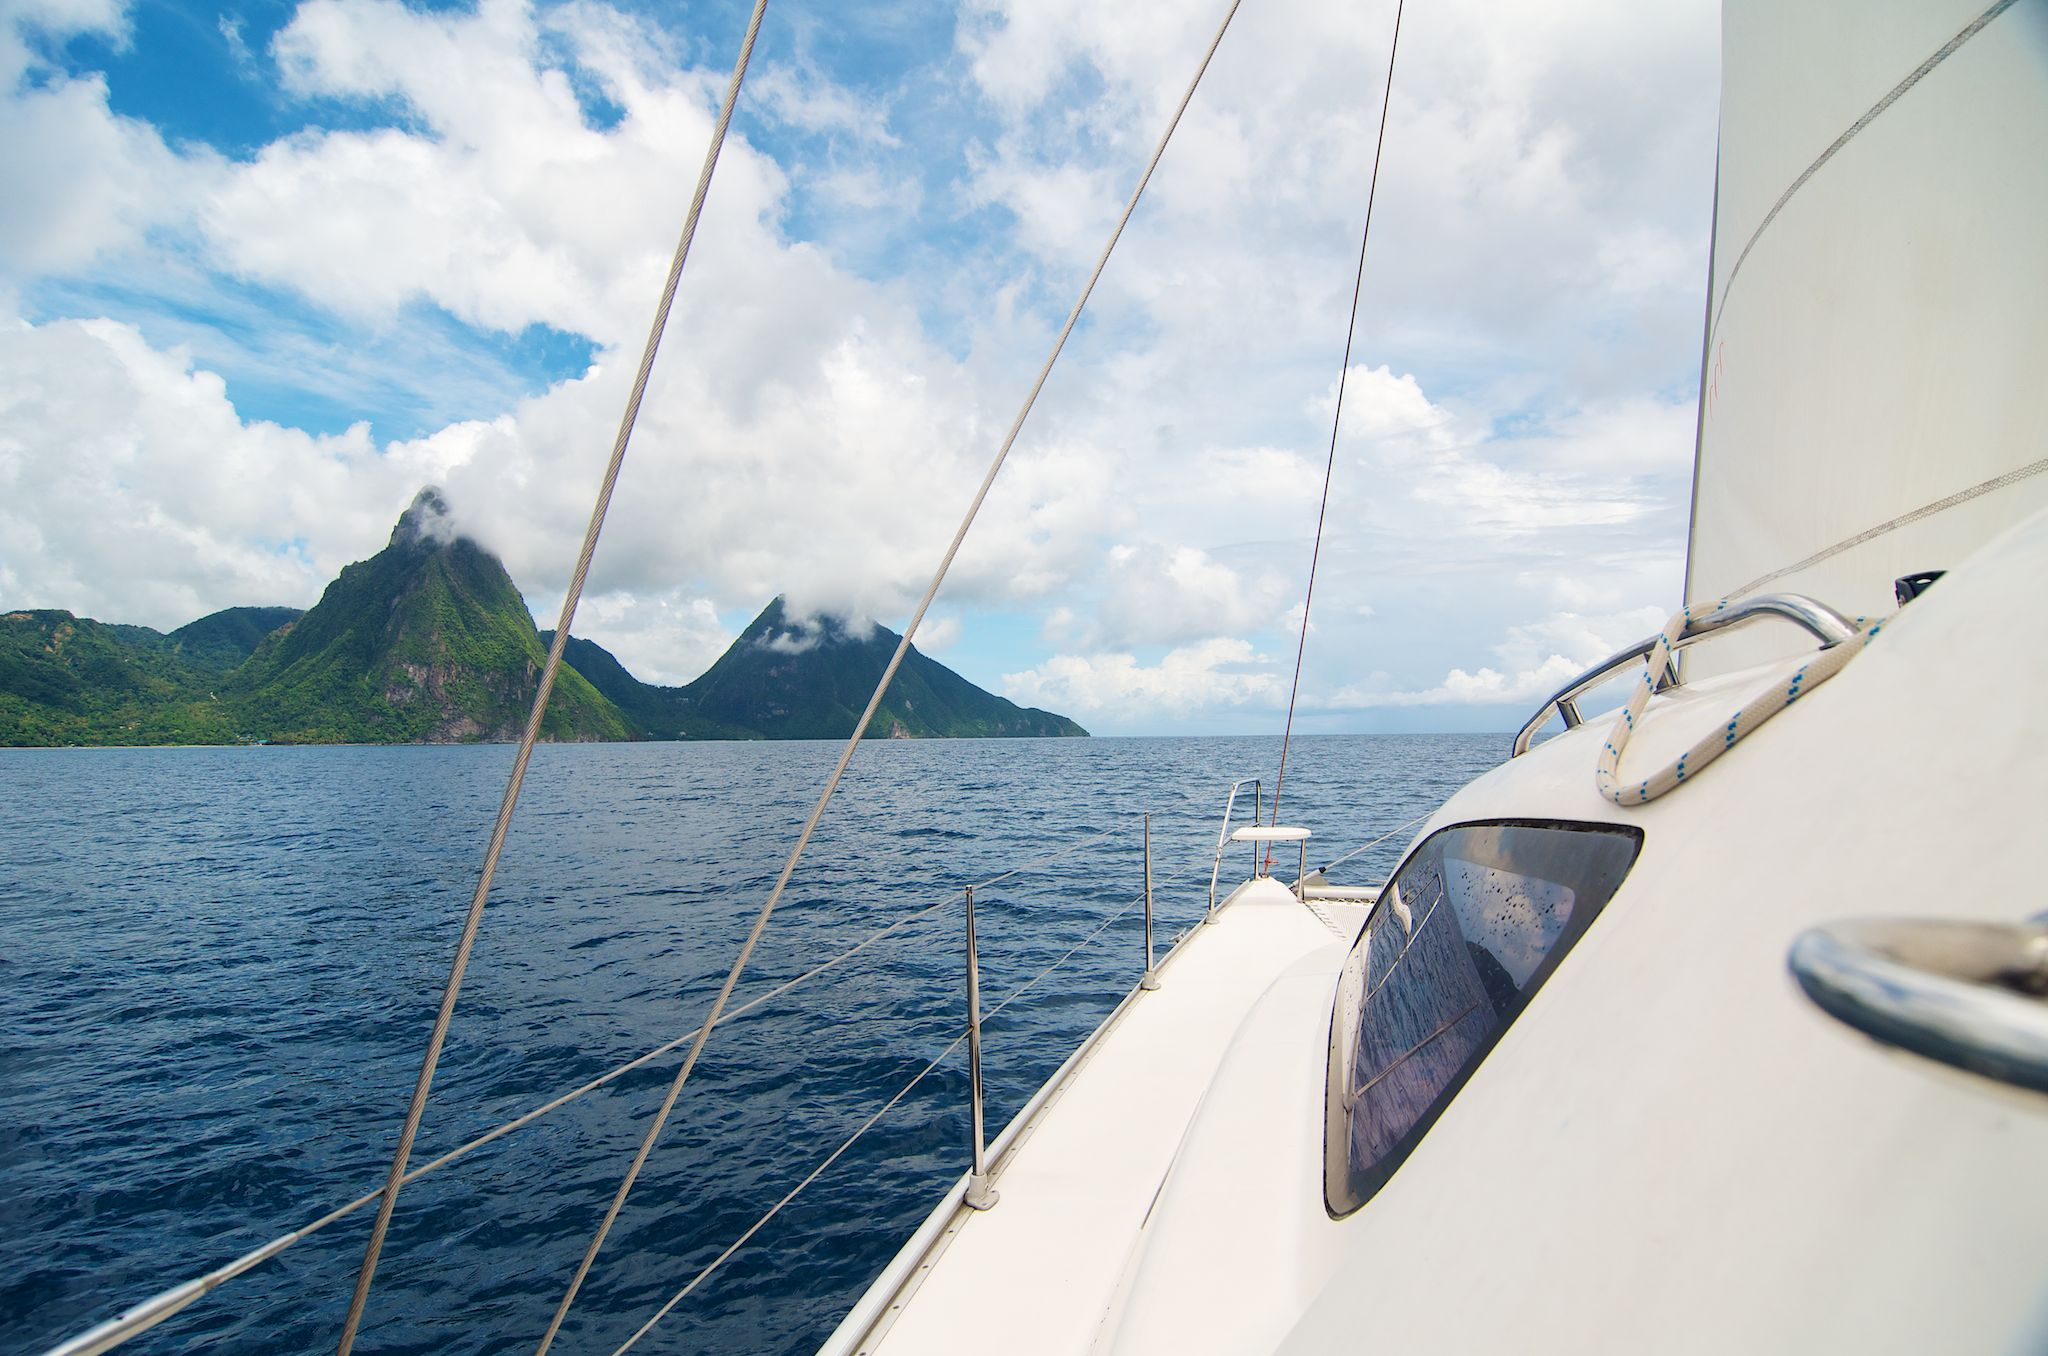 Sailing The Grenadines Part 2: Passing the Pitons and on to Bequia